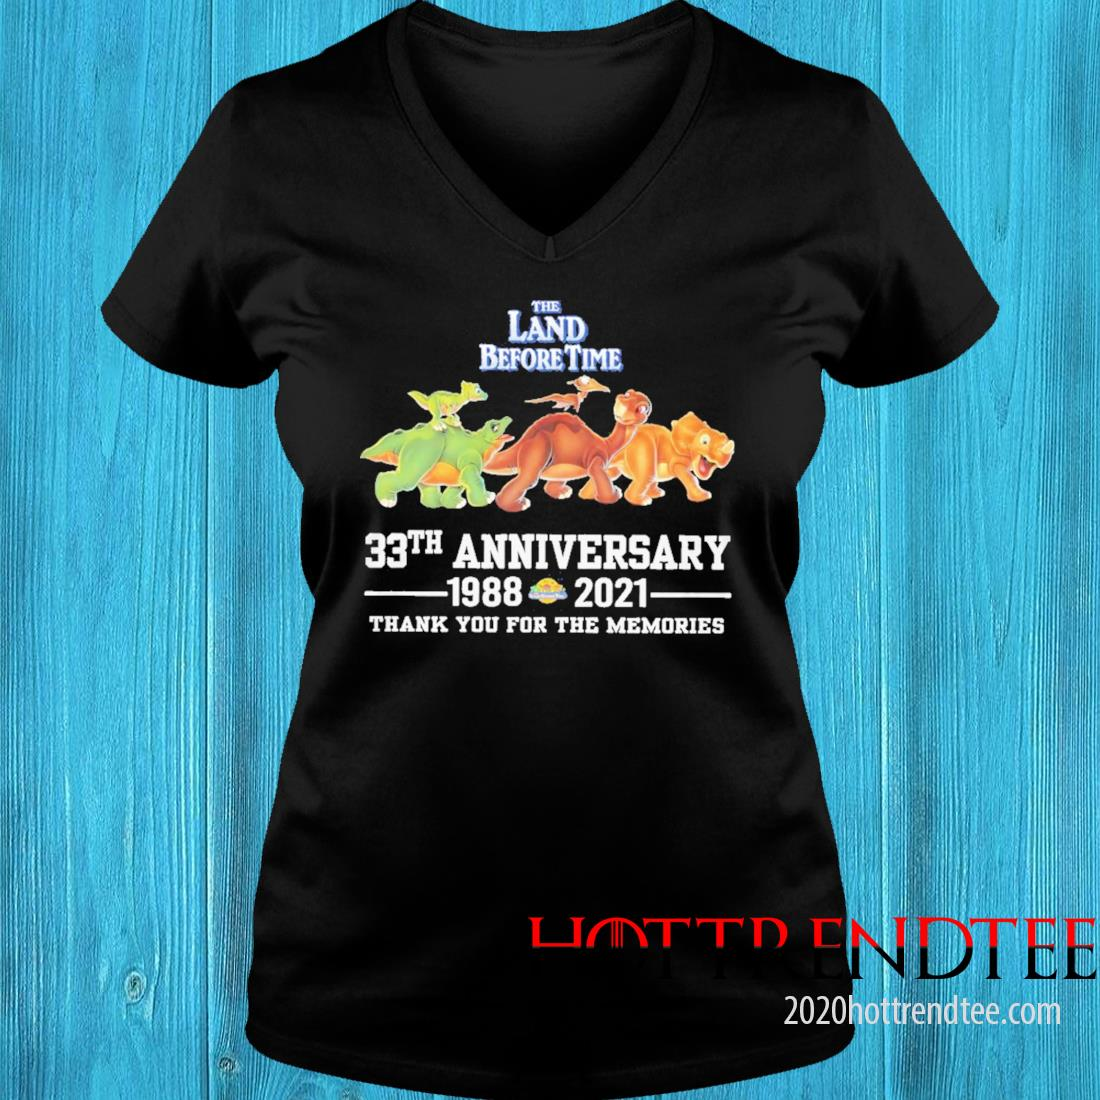 The Land Before Time 33th Anniversary 1988 2021 Thank You For The Memories Shirt v-neck tee